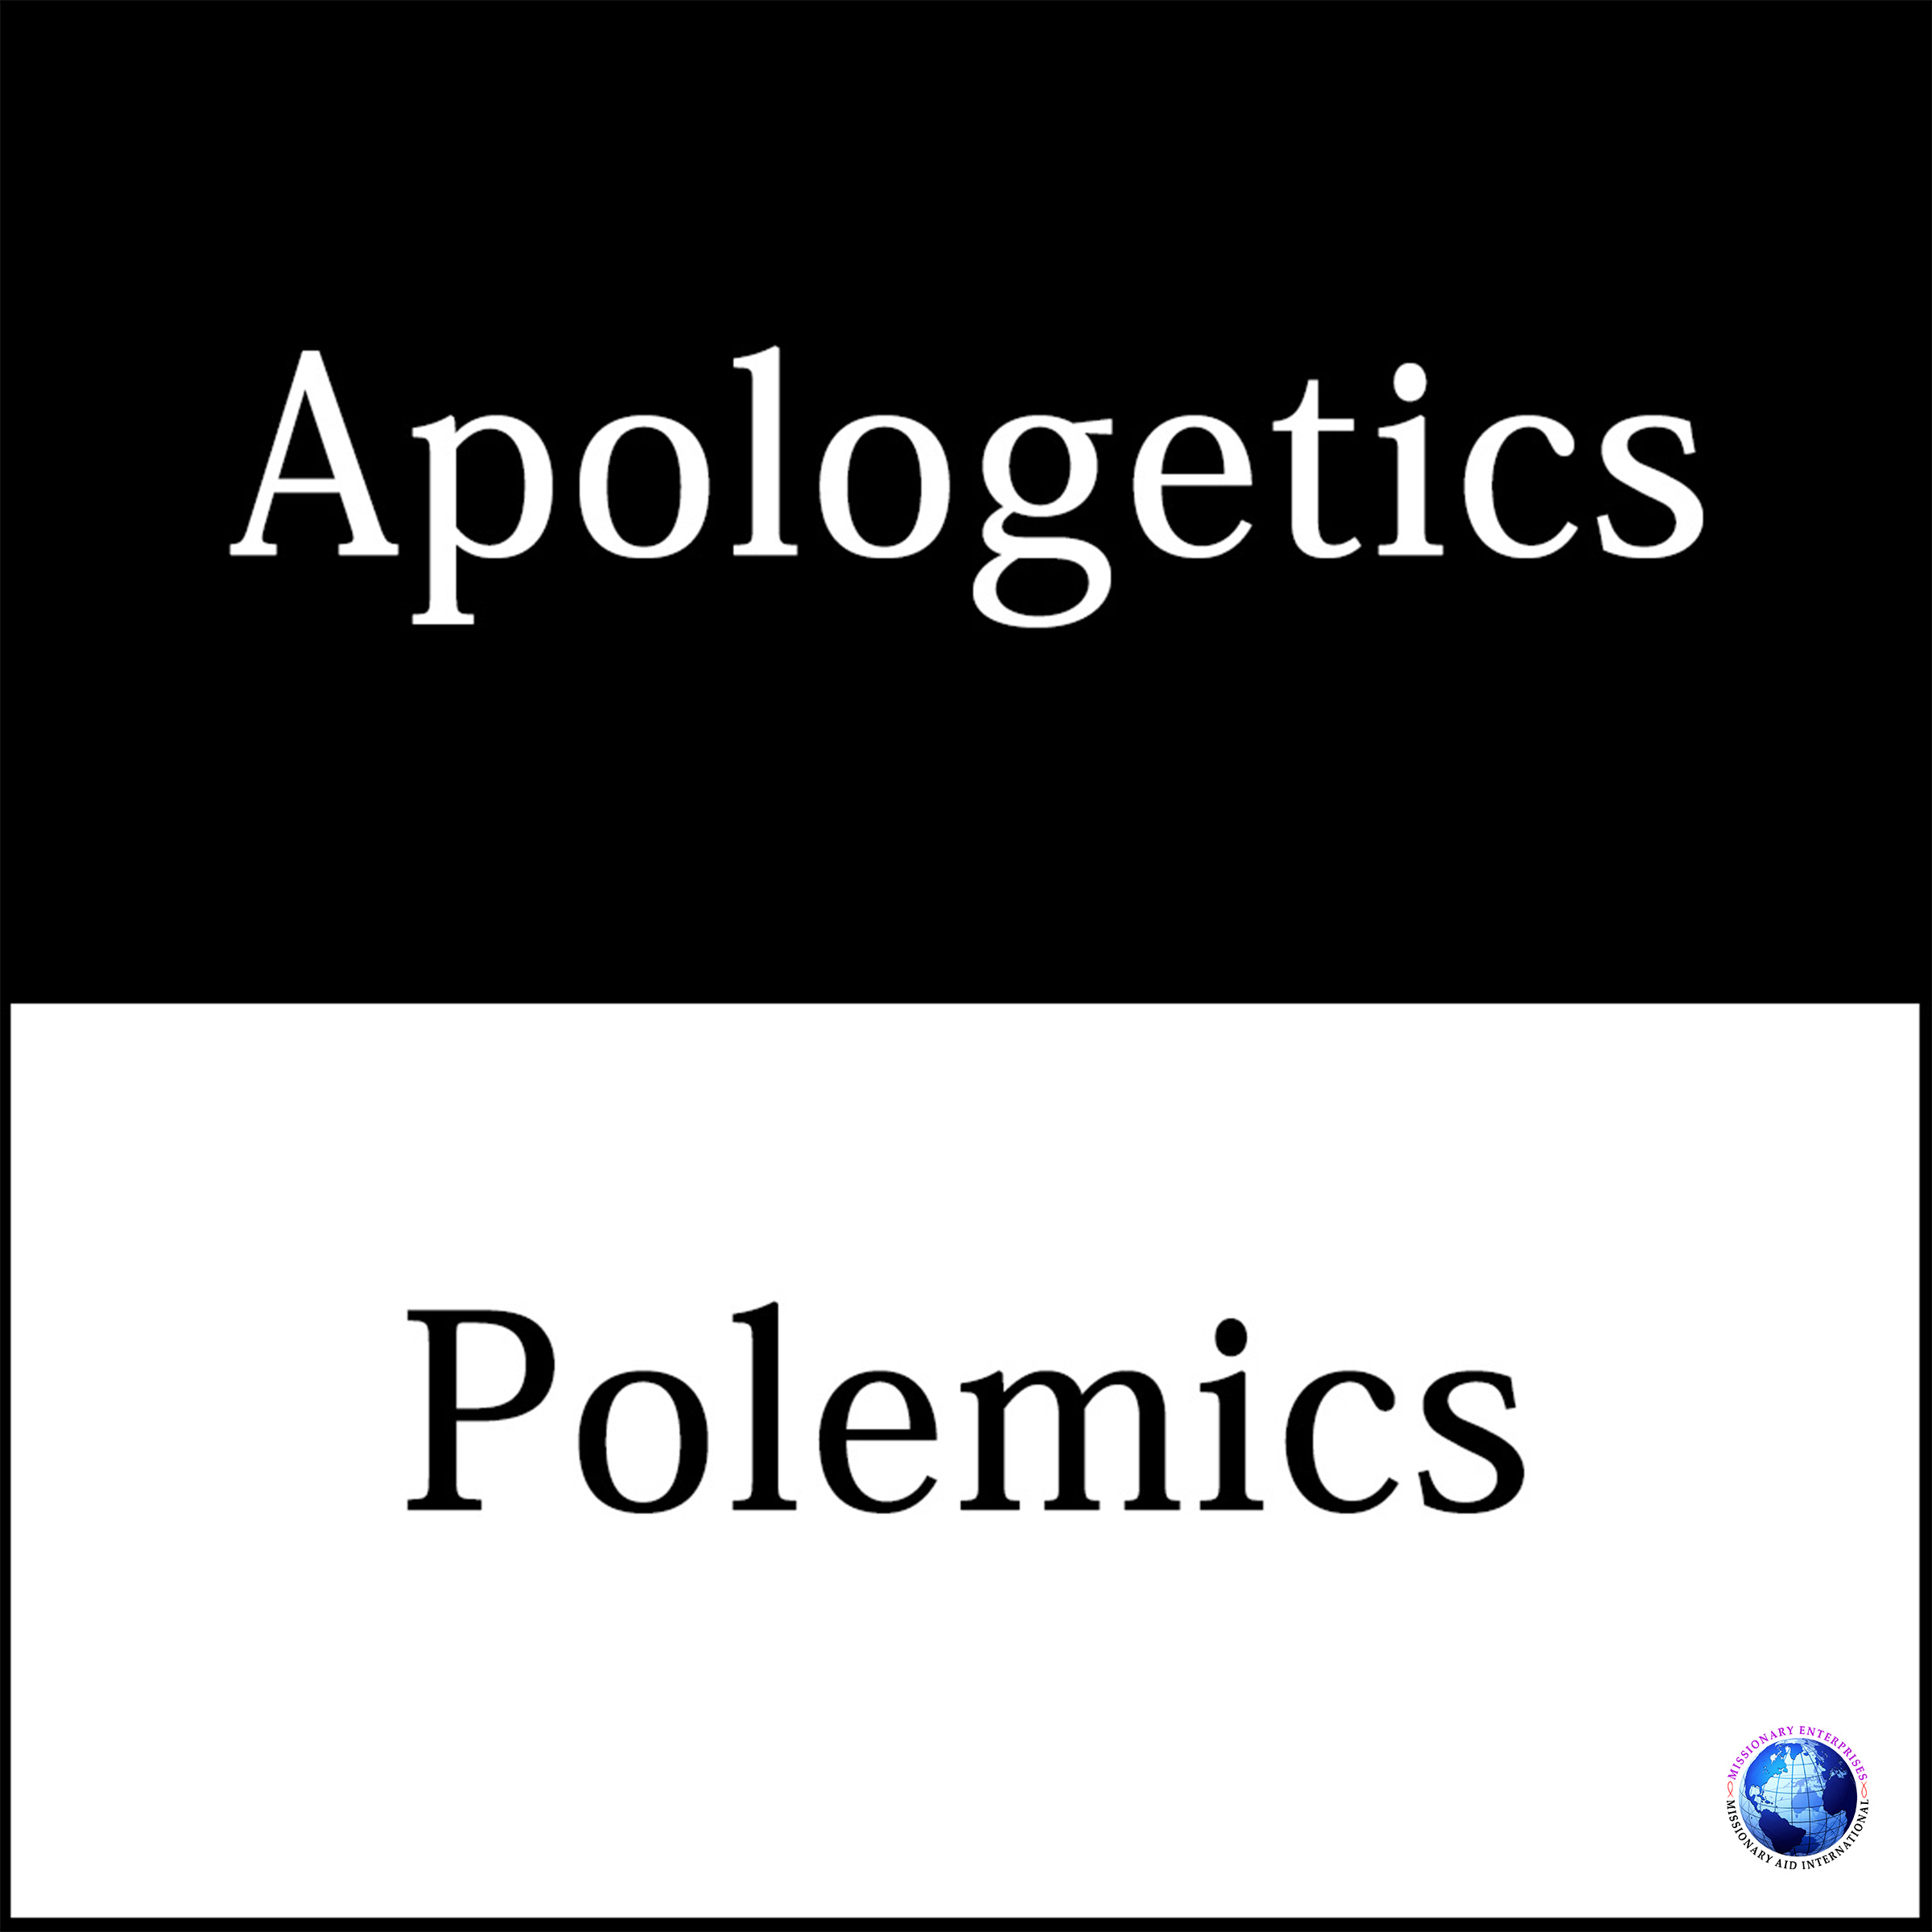 Apologetics / Polemics